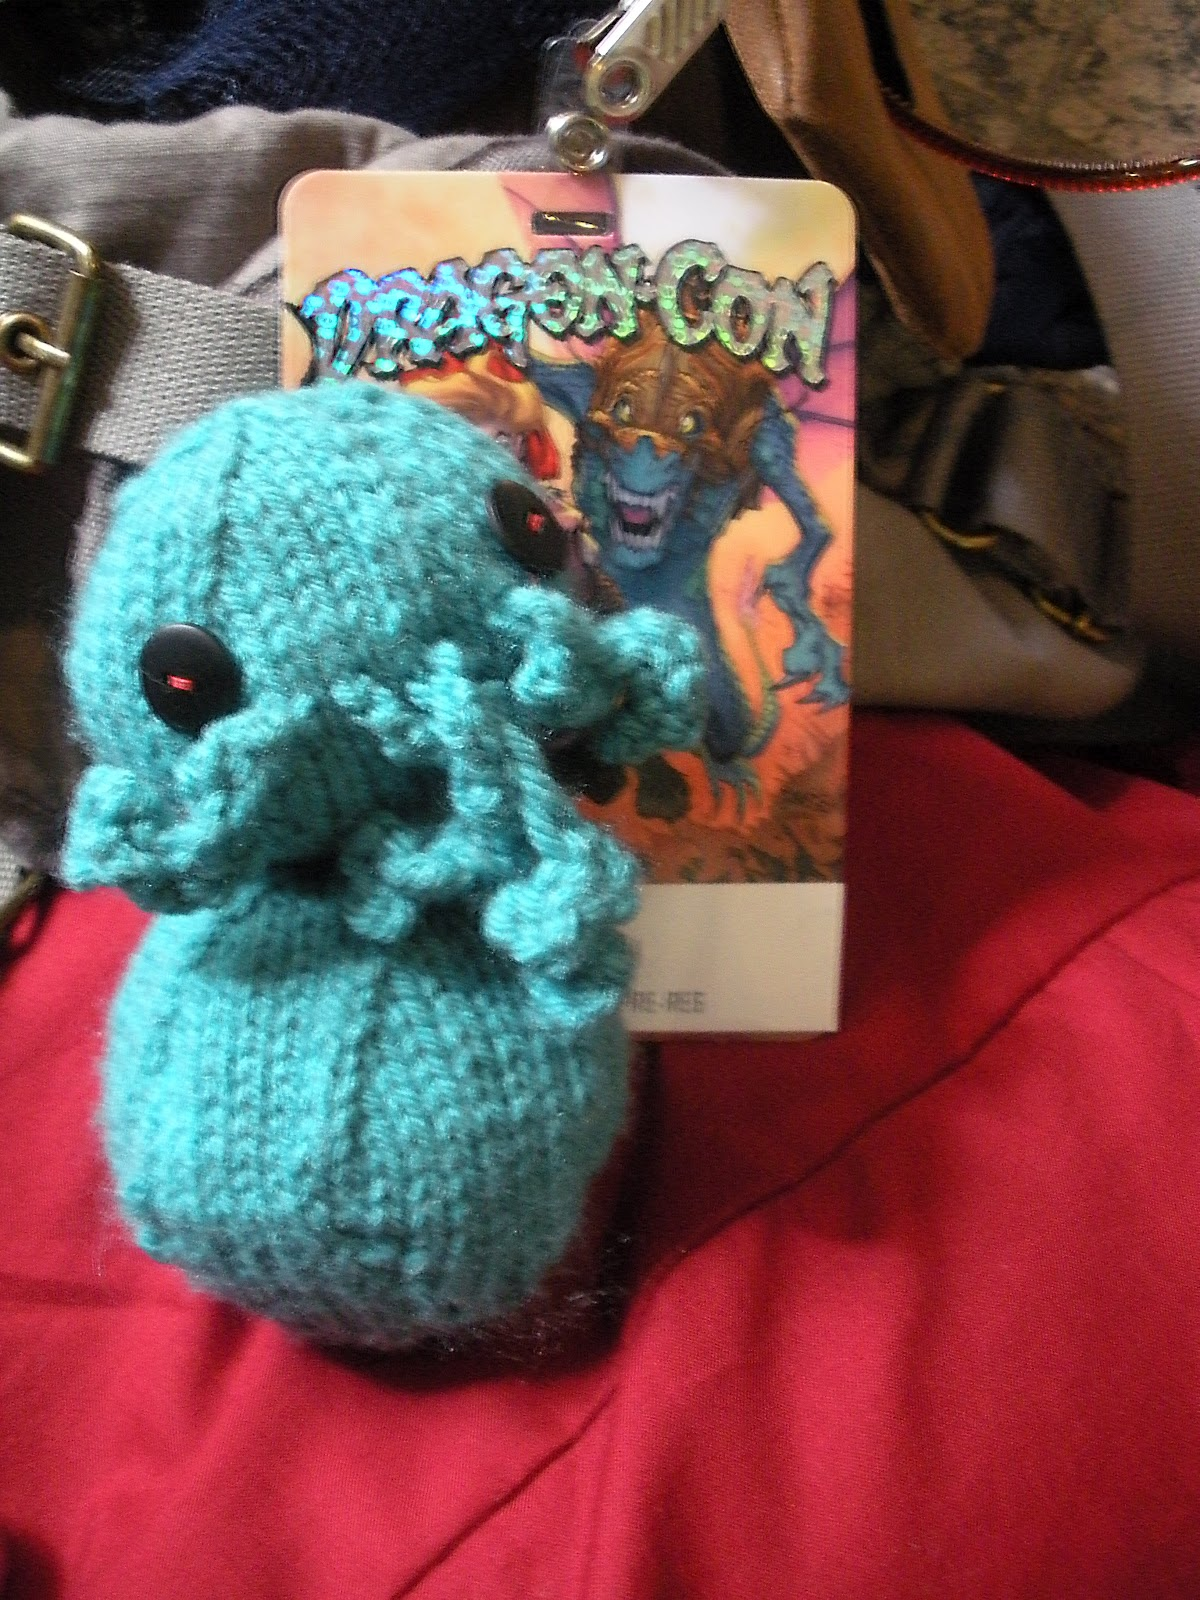 Knitting Zombies : Zombies knitting and time well wasted knit cthulhu